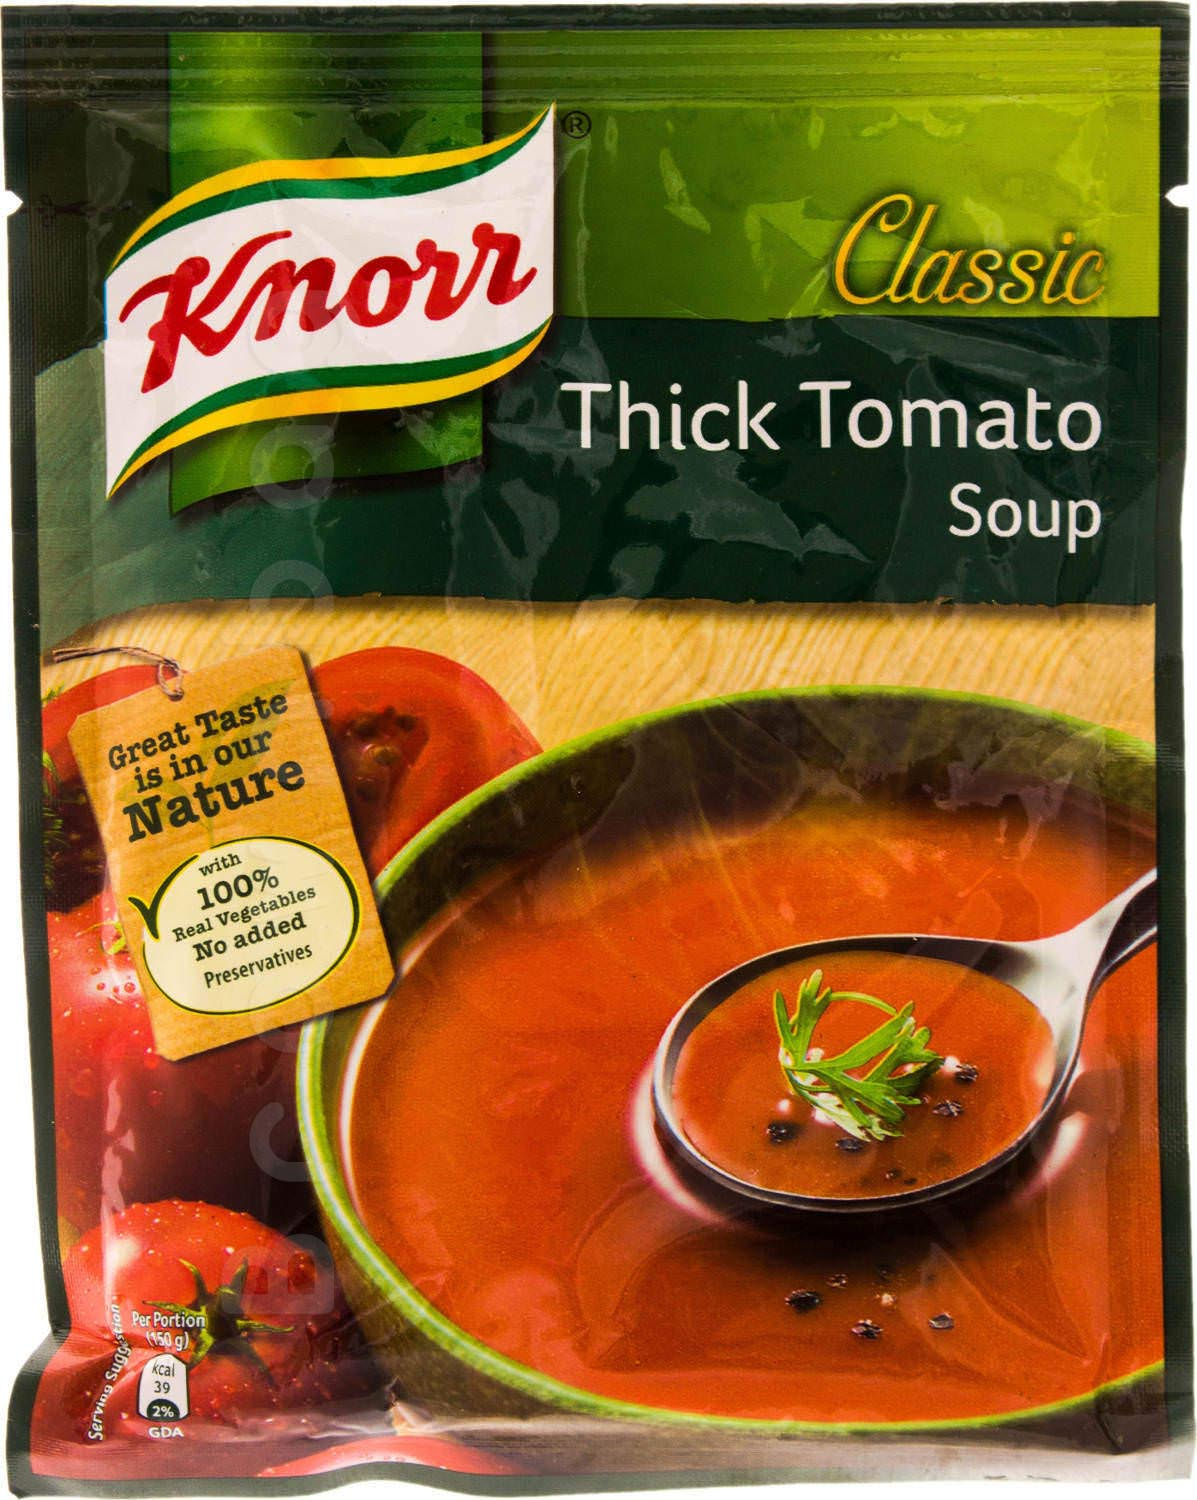 Knorr Classic Thick Tomato Soup with 100% Real Vegetables